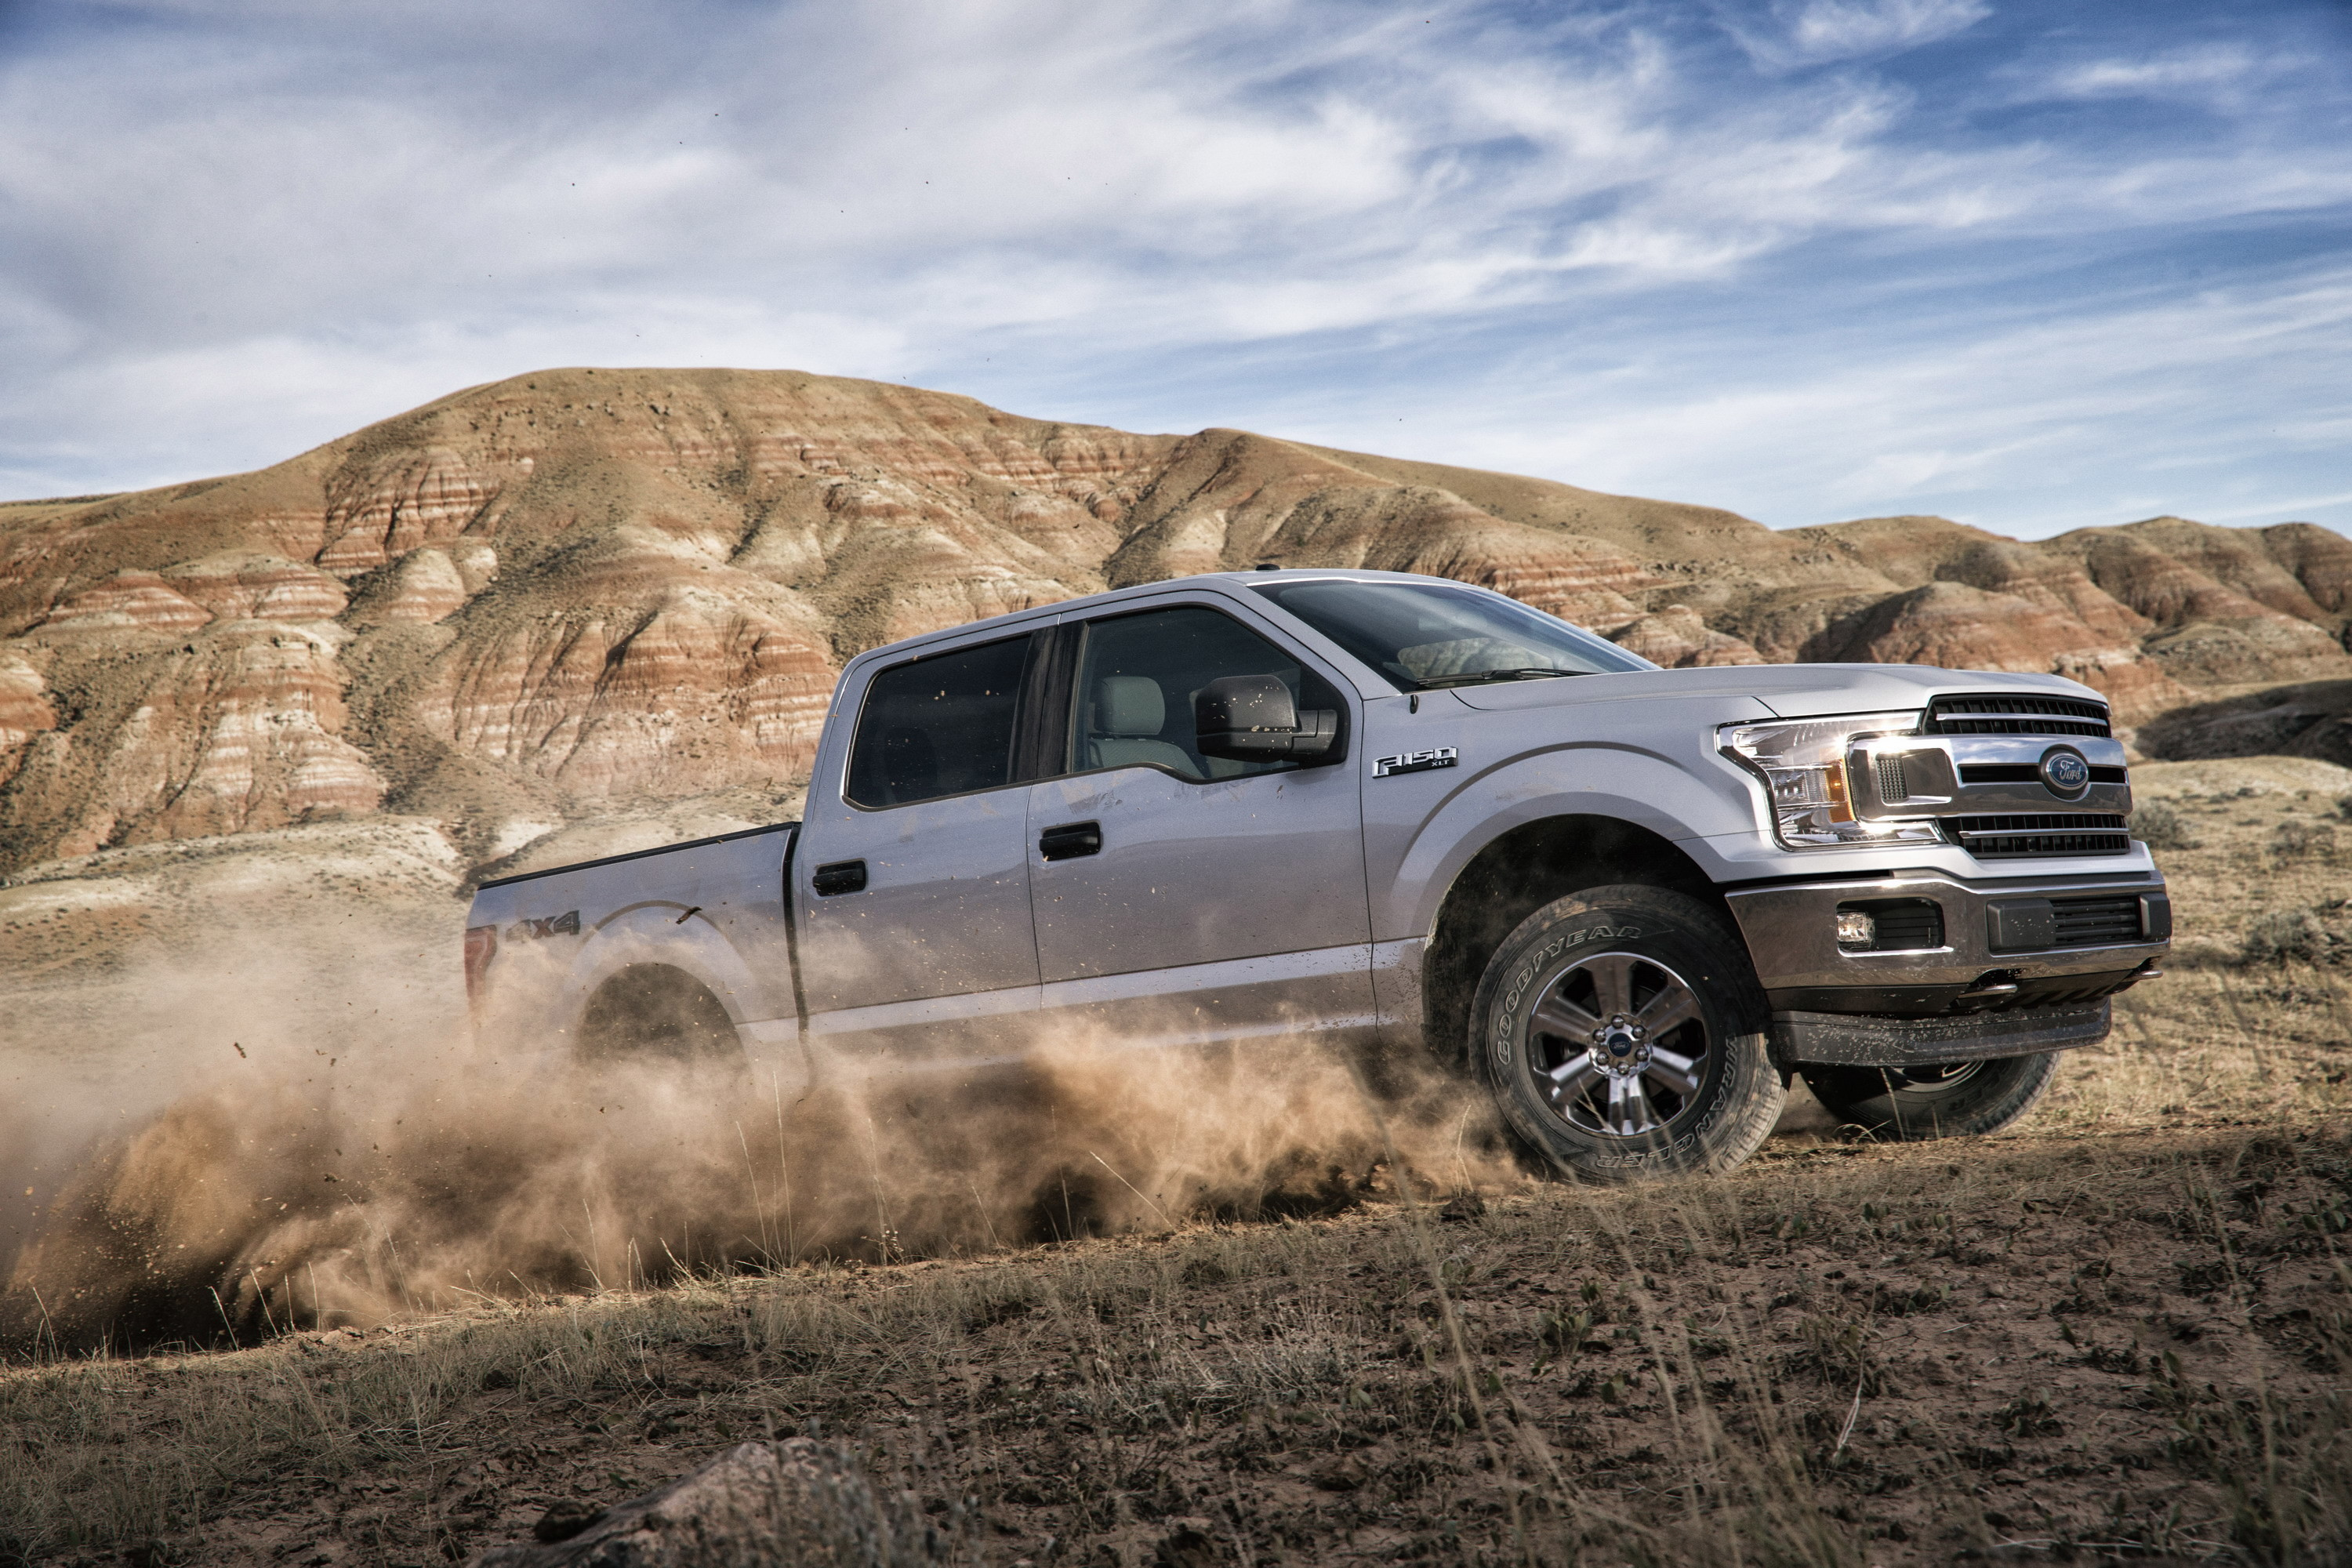 3000x2000 Wallpaper of the Day: 2018 Ford F-150